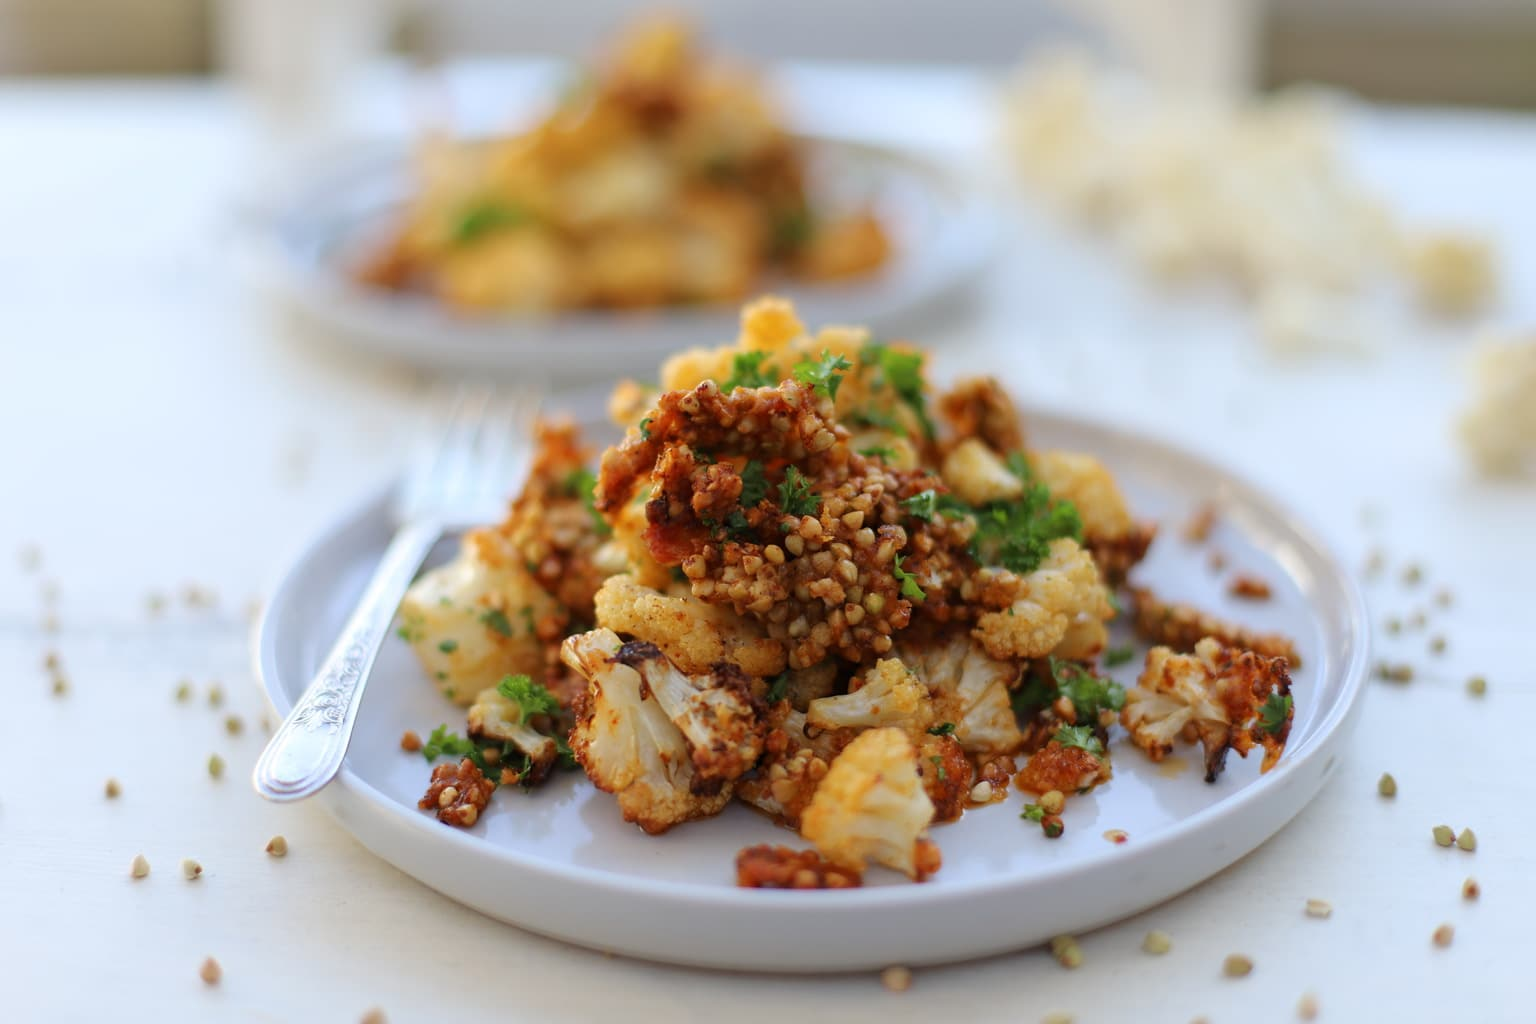 Cauliflower and Buckwheat Salad